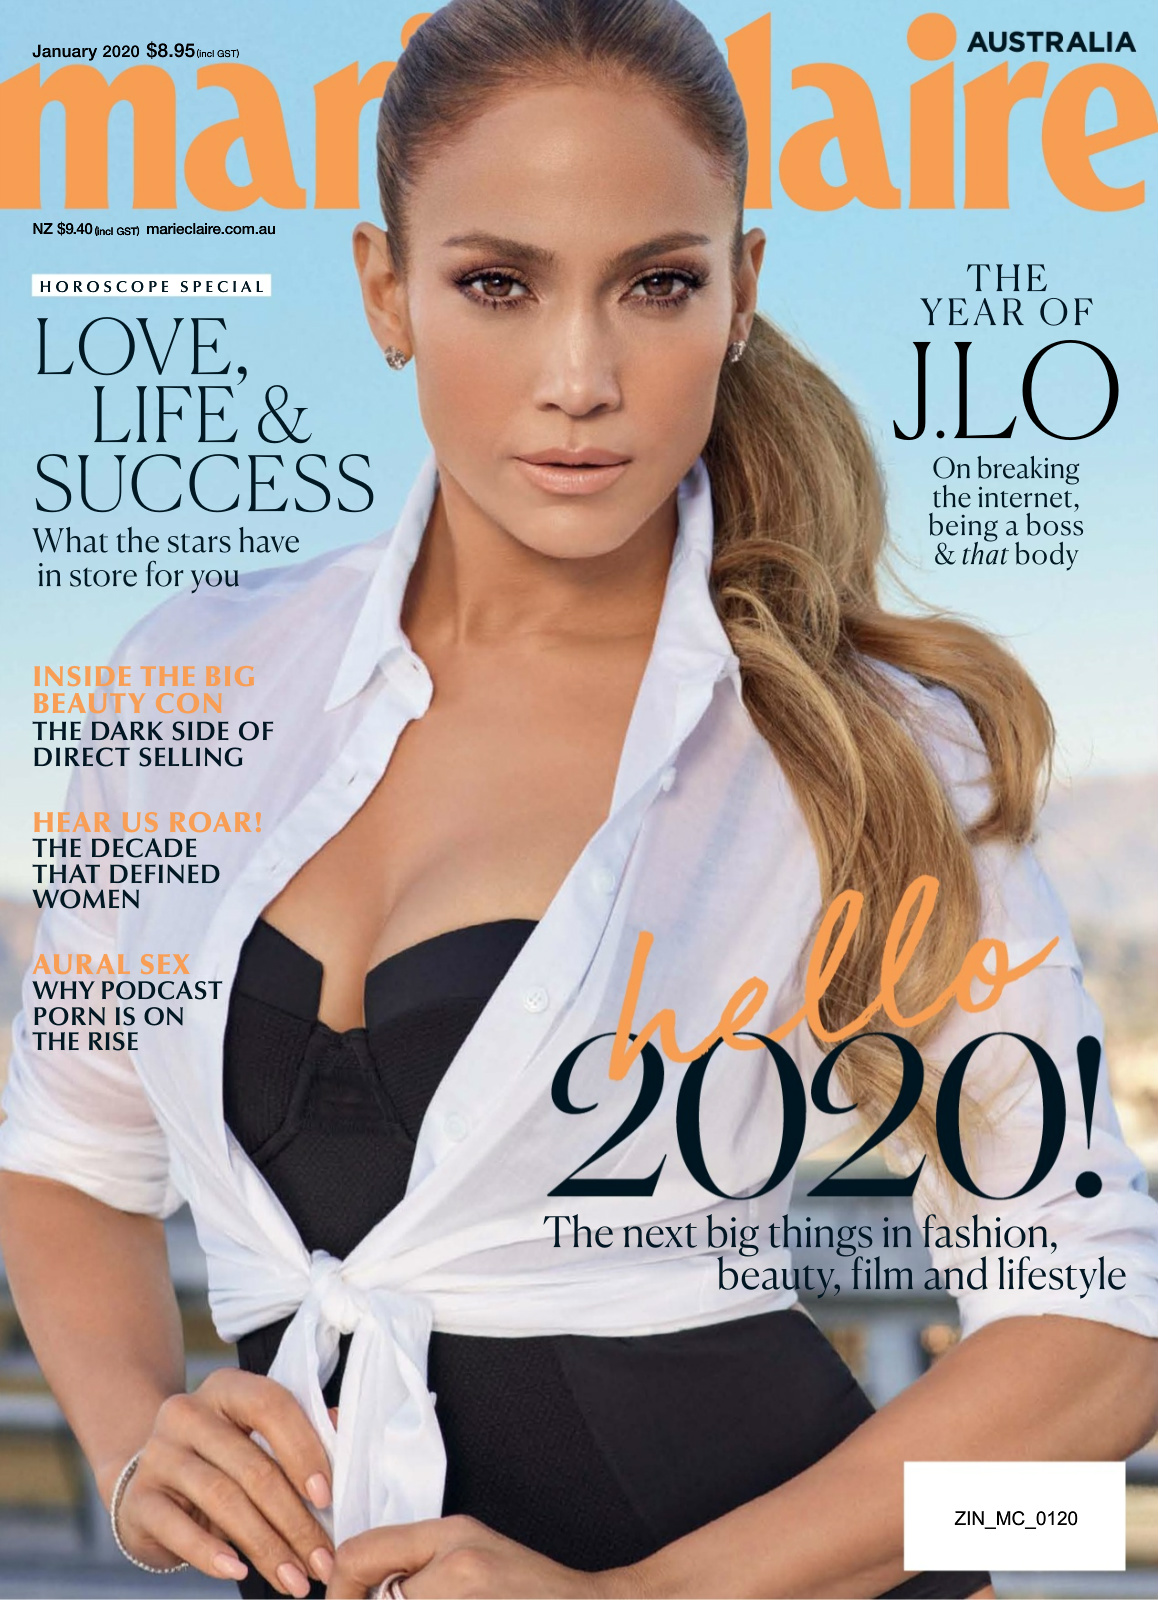 Adelaide Nanny Porn Brazilian marie claire australia (january 2020) pages 51 - 100 - text